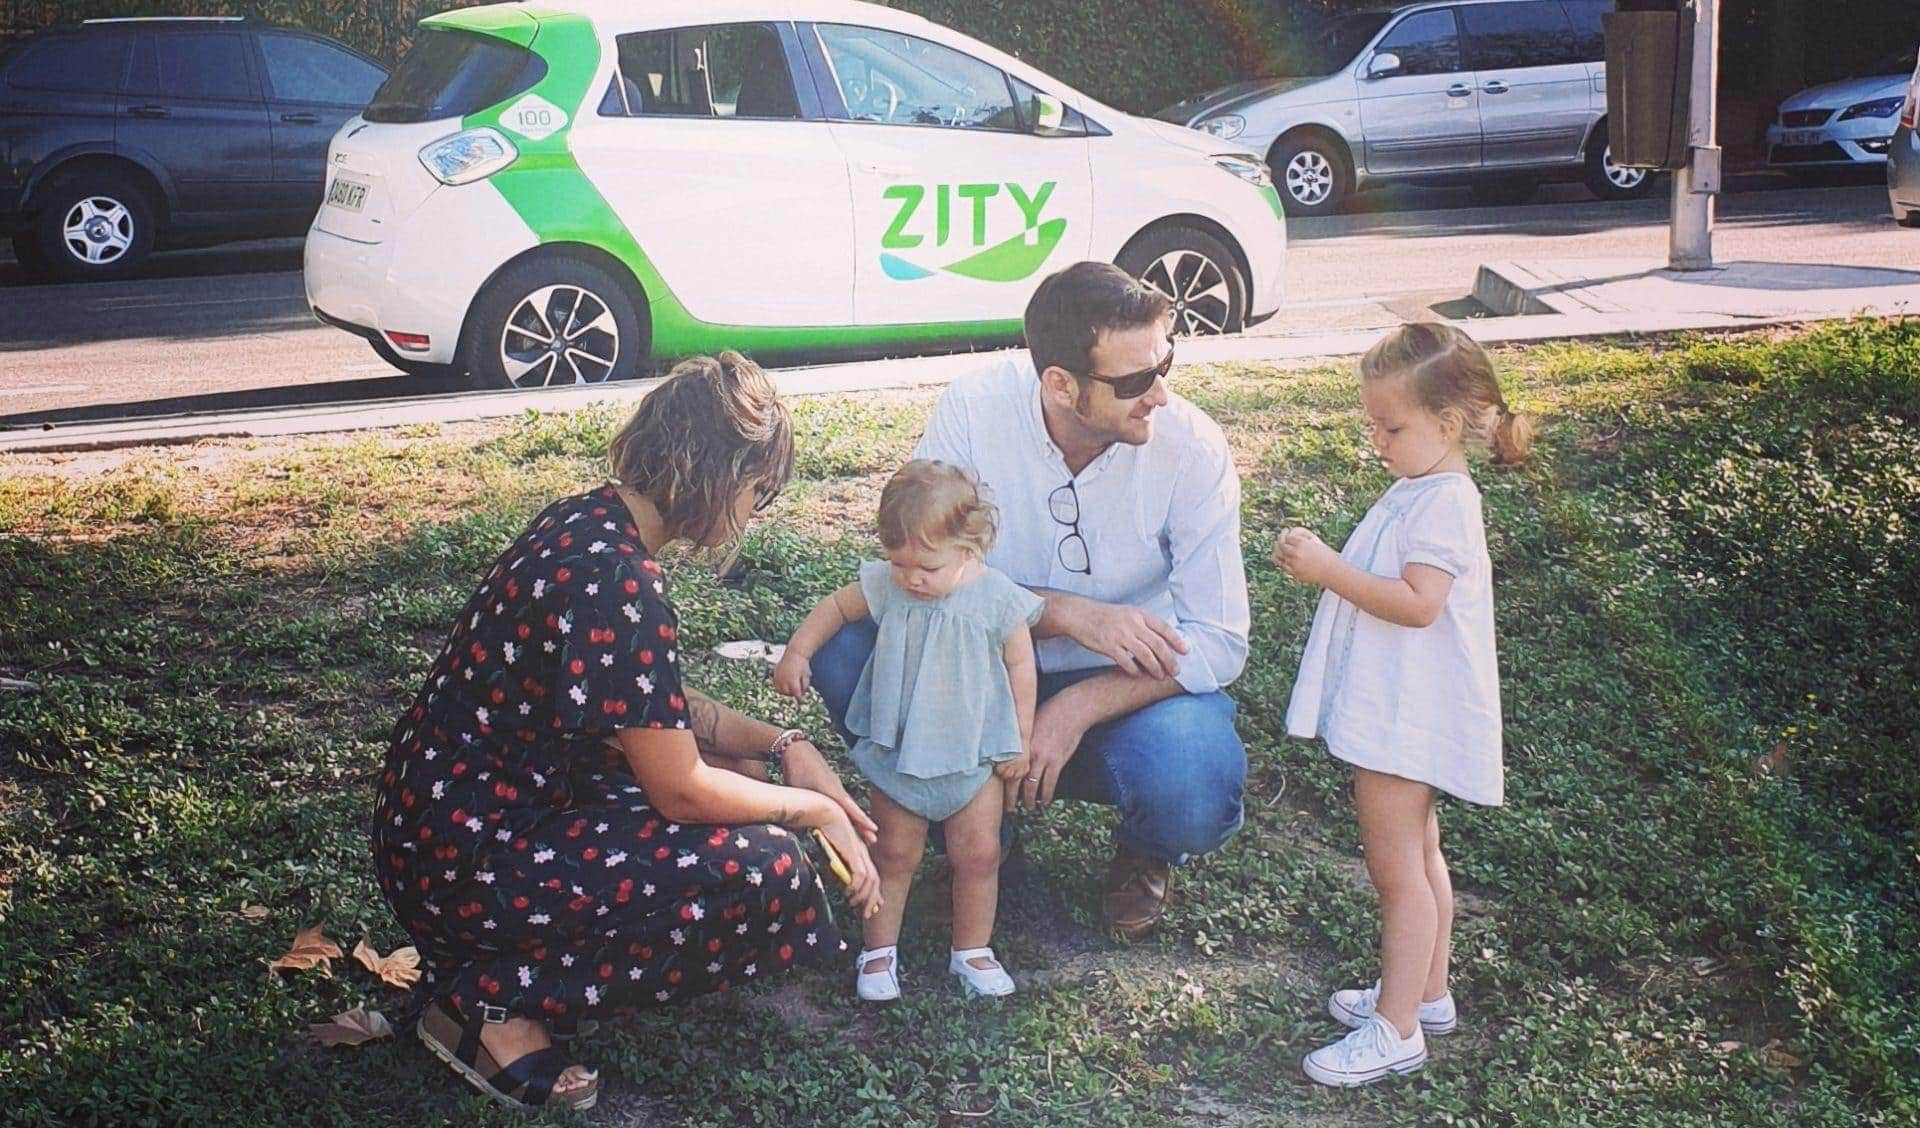 Image of a family with two children in front of a Zity car